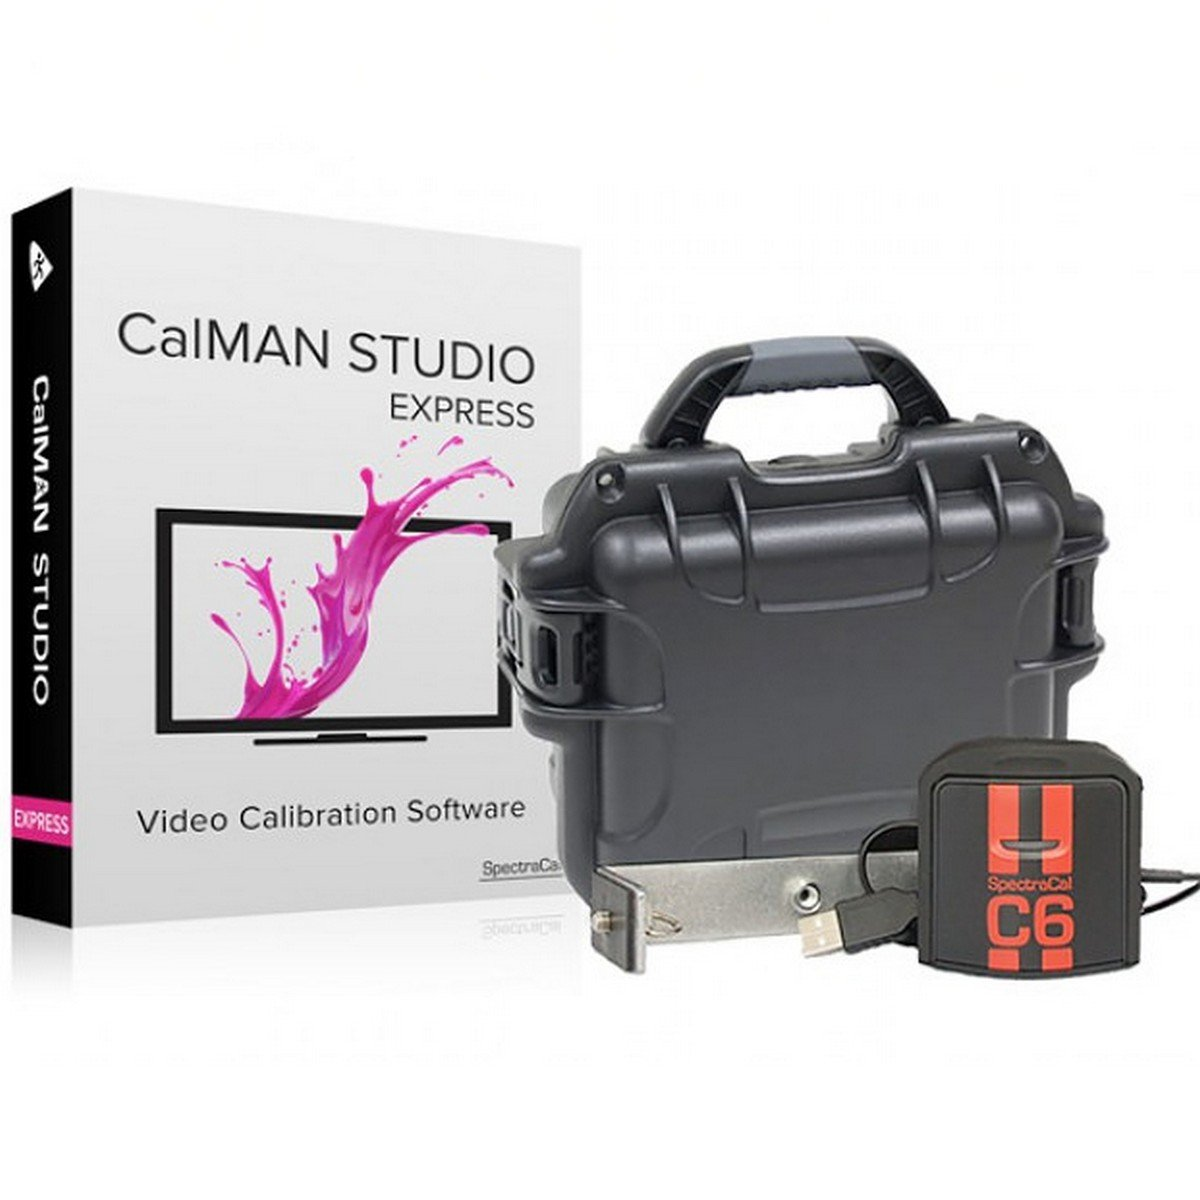 SpectraCal CalMAN Studio Express Bundle with C6 | Display